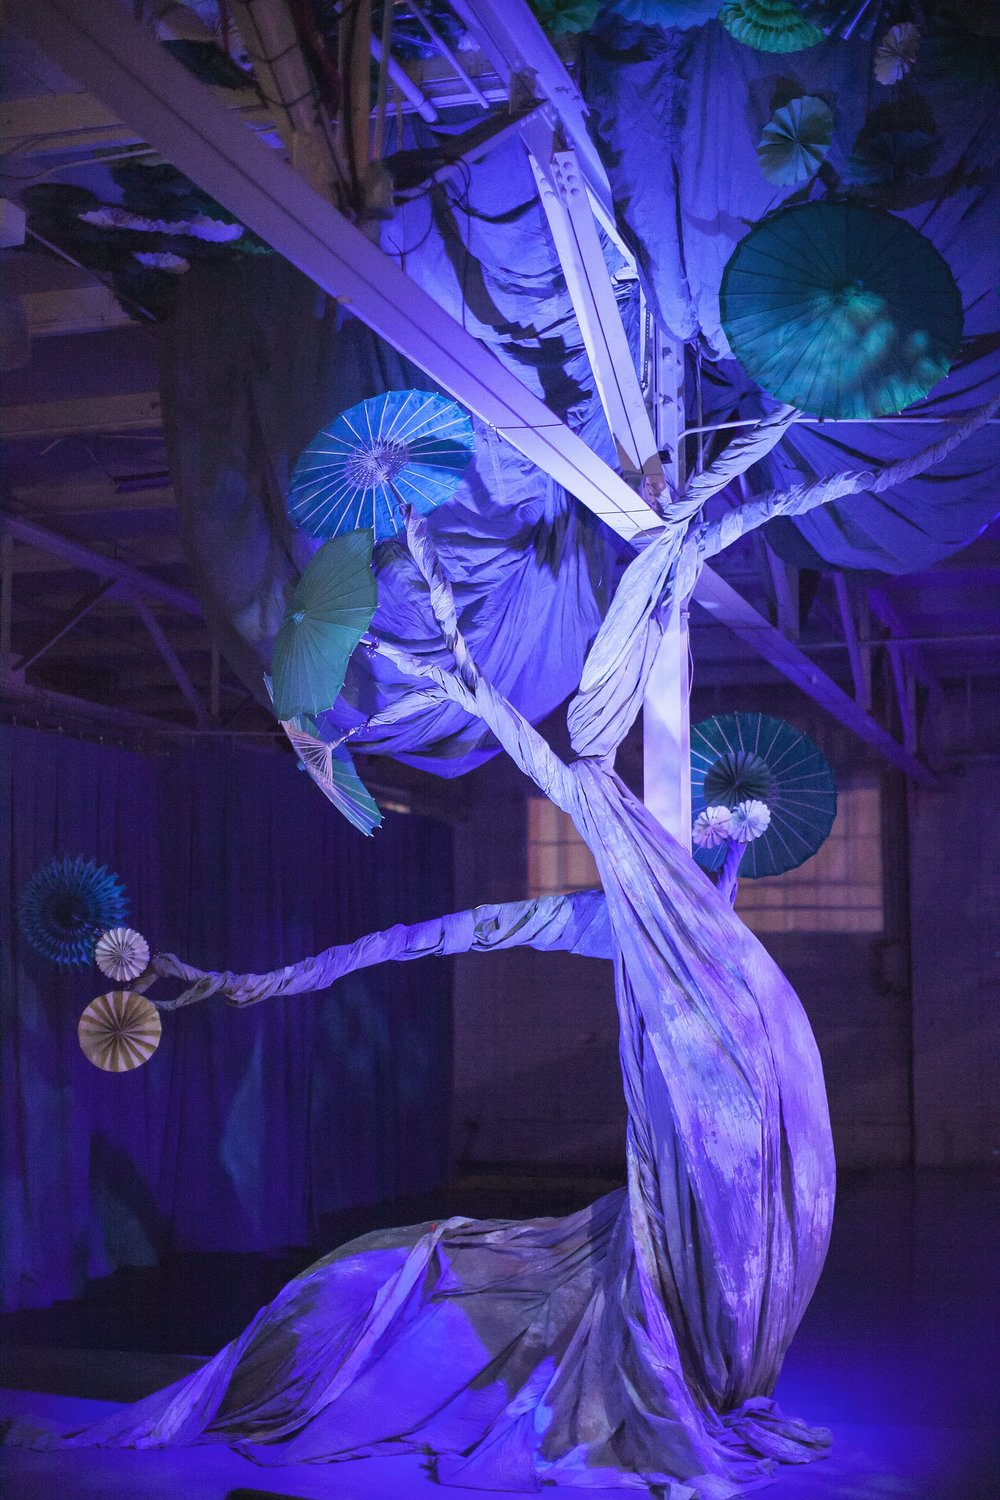 the-tree-designed-by-Tom-Varani-for-Wonderbound_s-production-of-Snow-with-Jesse-Manely-and-His-Band_Photo-by-Amanda-Tipton_2017.jpg